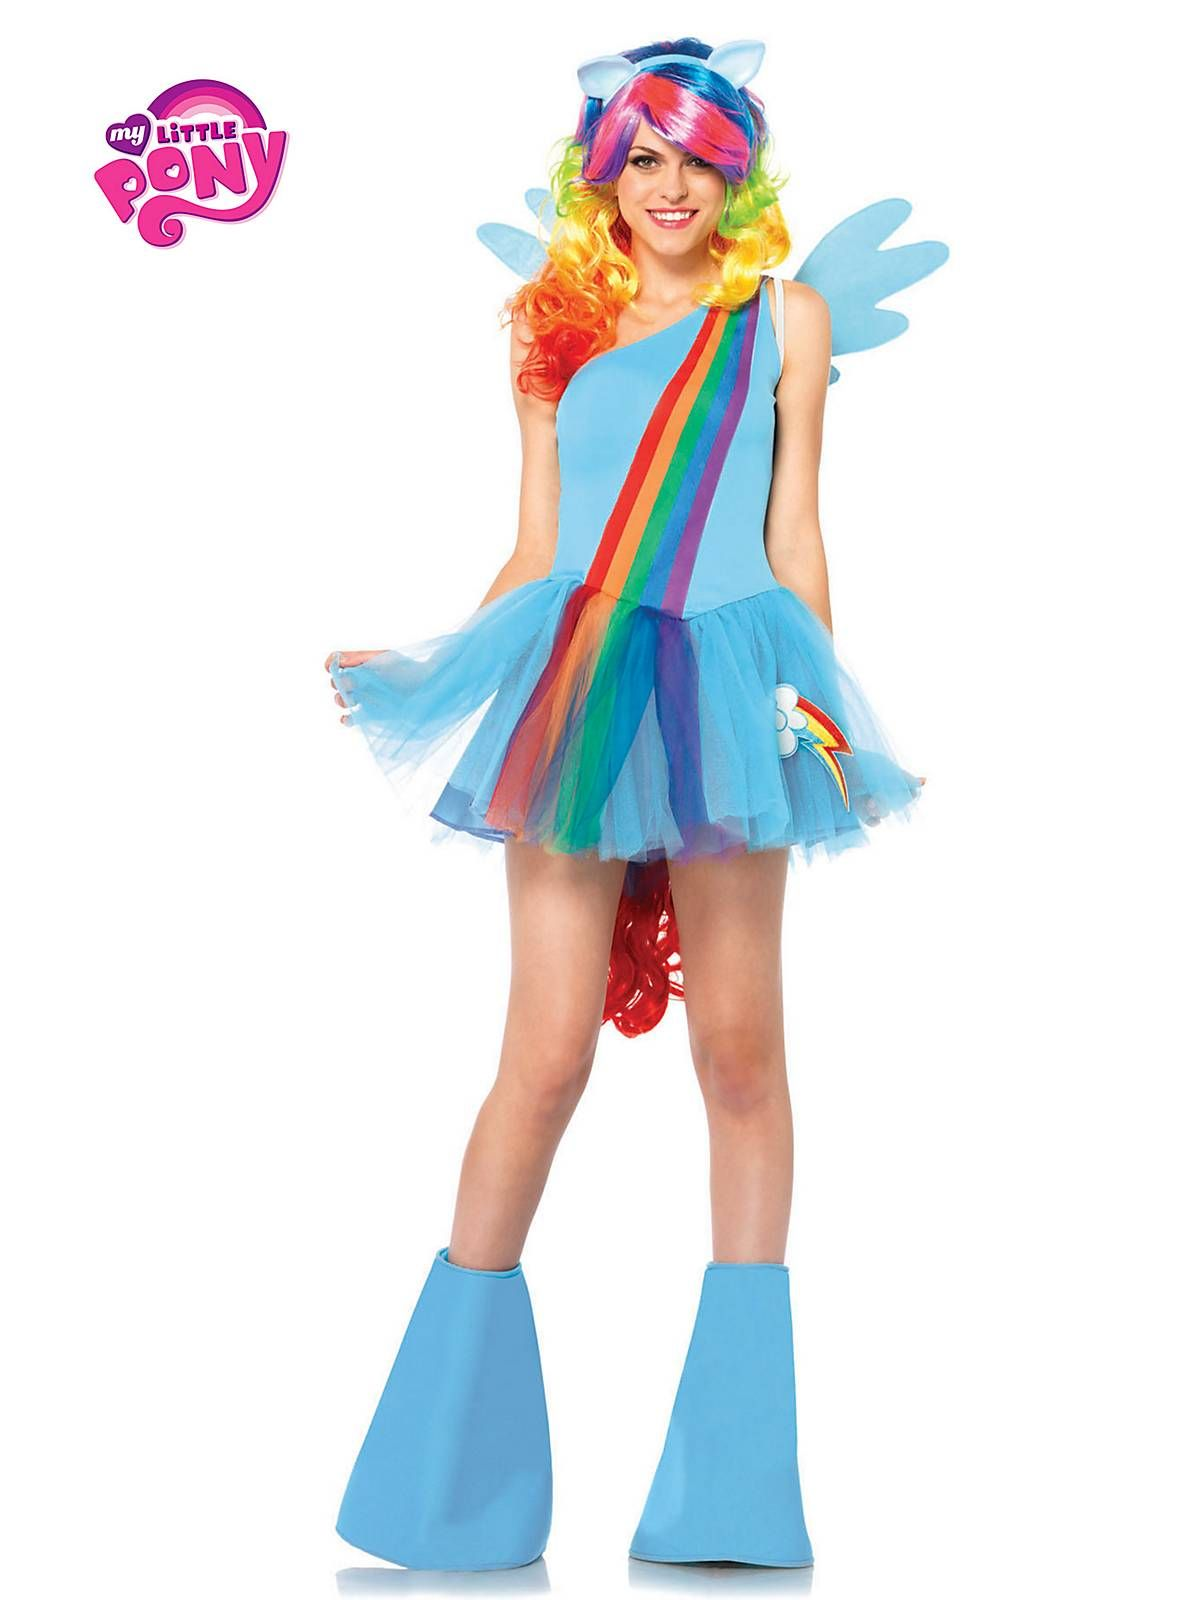 ba5a610962697 Sexy My Little Pony Rainbow Dash Costume | TV & Movie Costumes ...